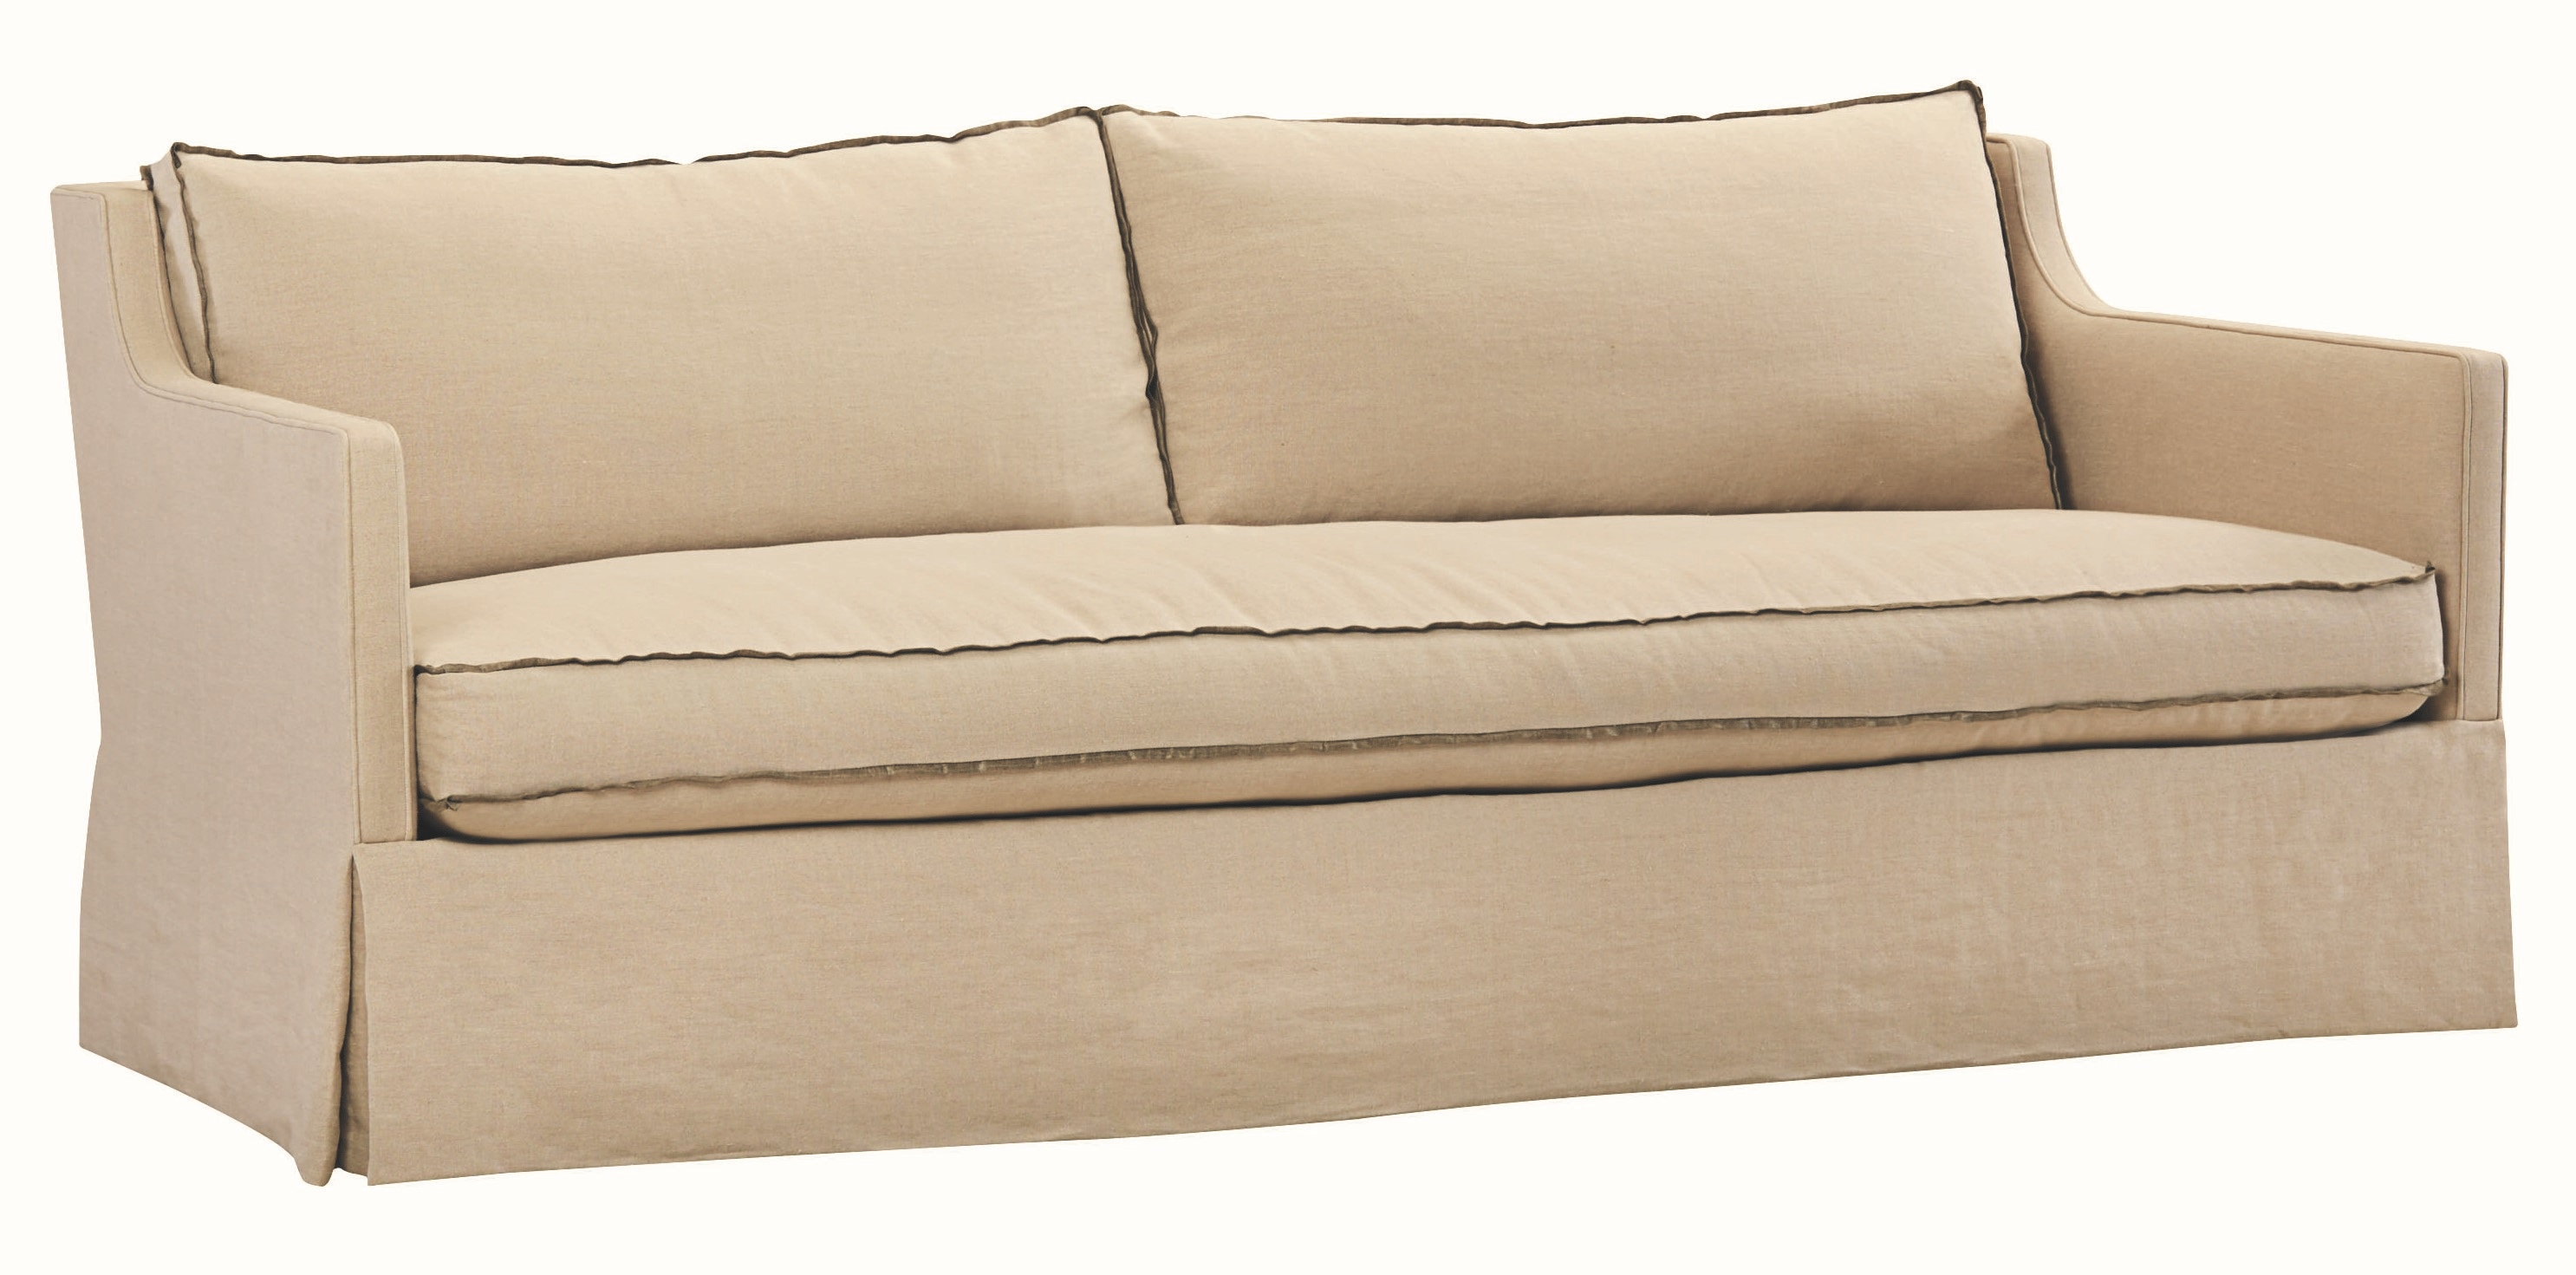 lee industries sofa prices beverly 2pc sectional living room apartment 1401 11 toms